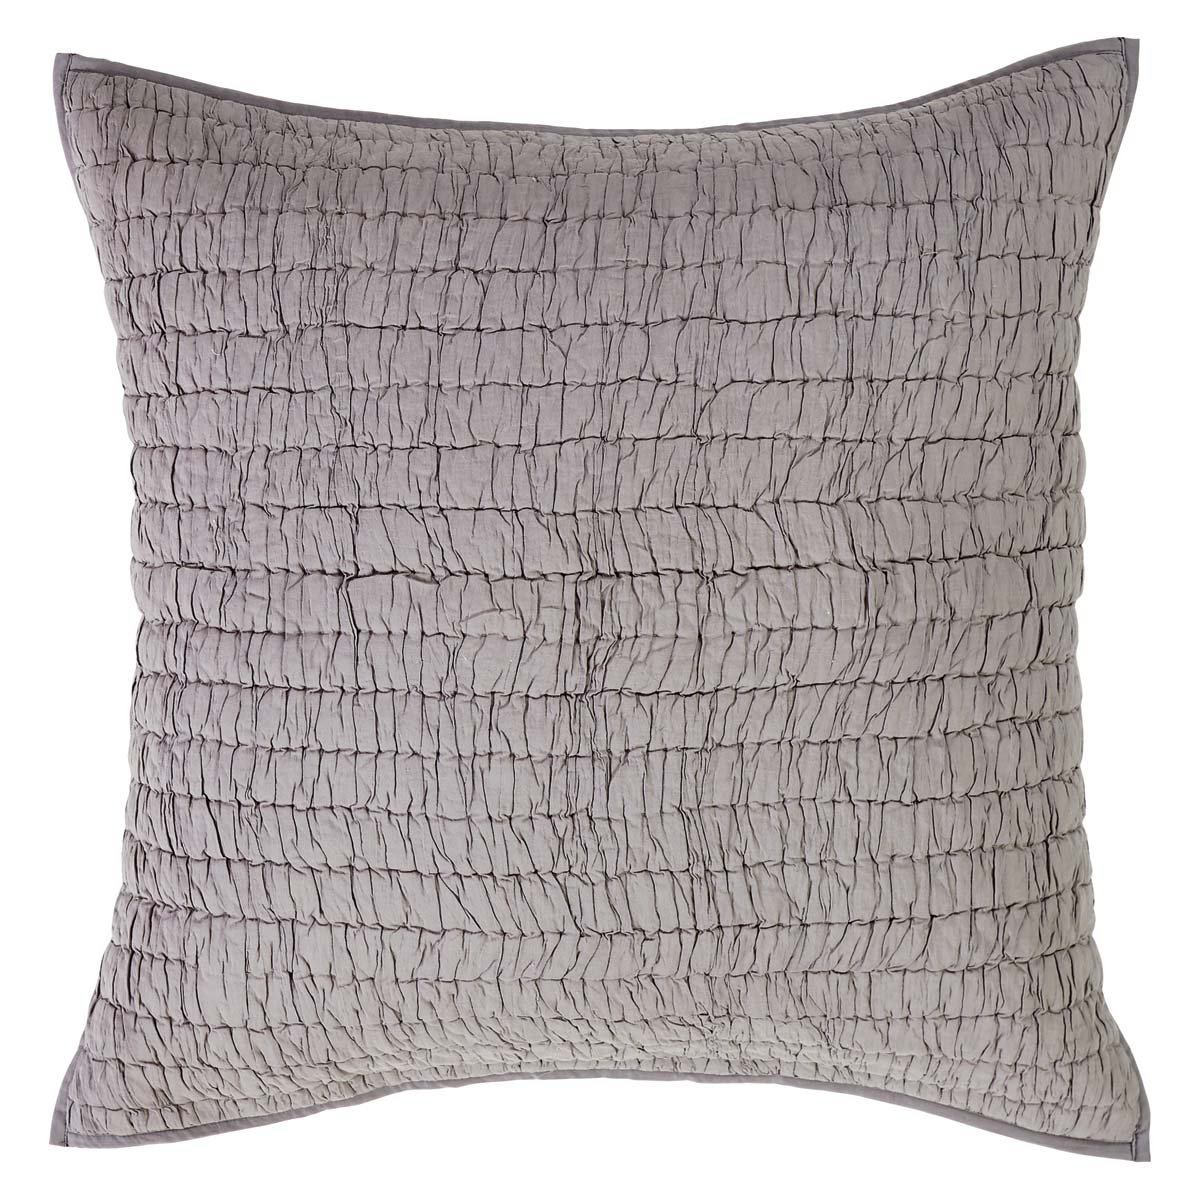 VHC Brands Rochelle Grey Quilted Euro Sham 26x26 by VHC Brands